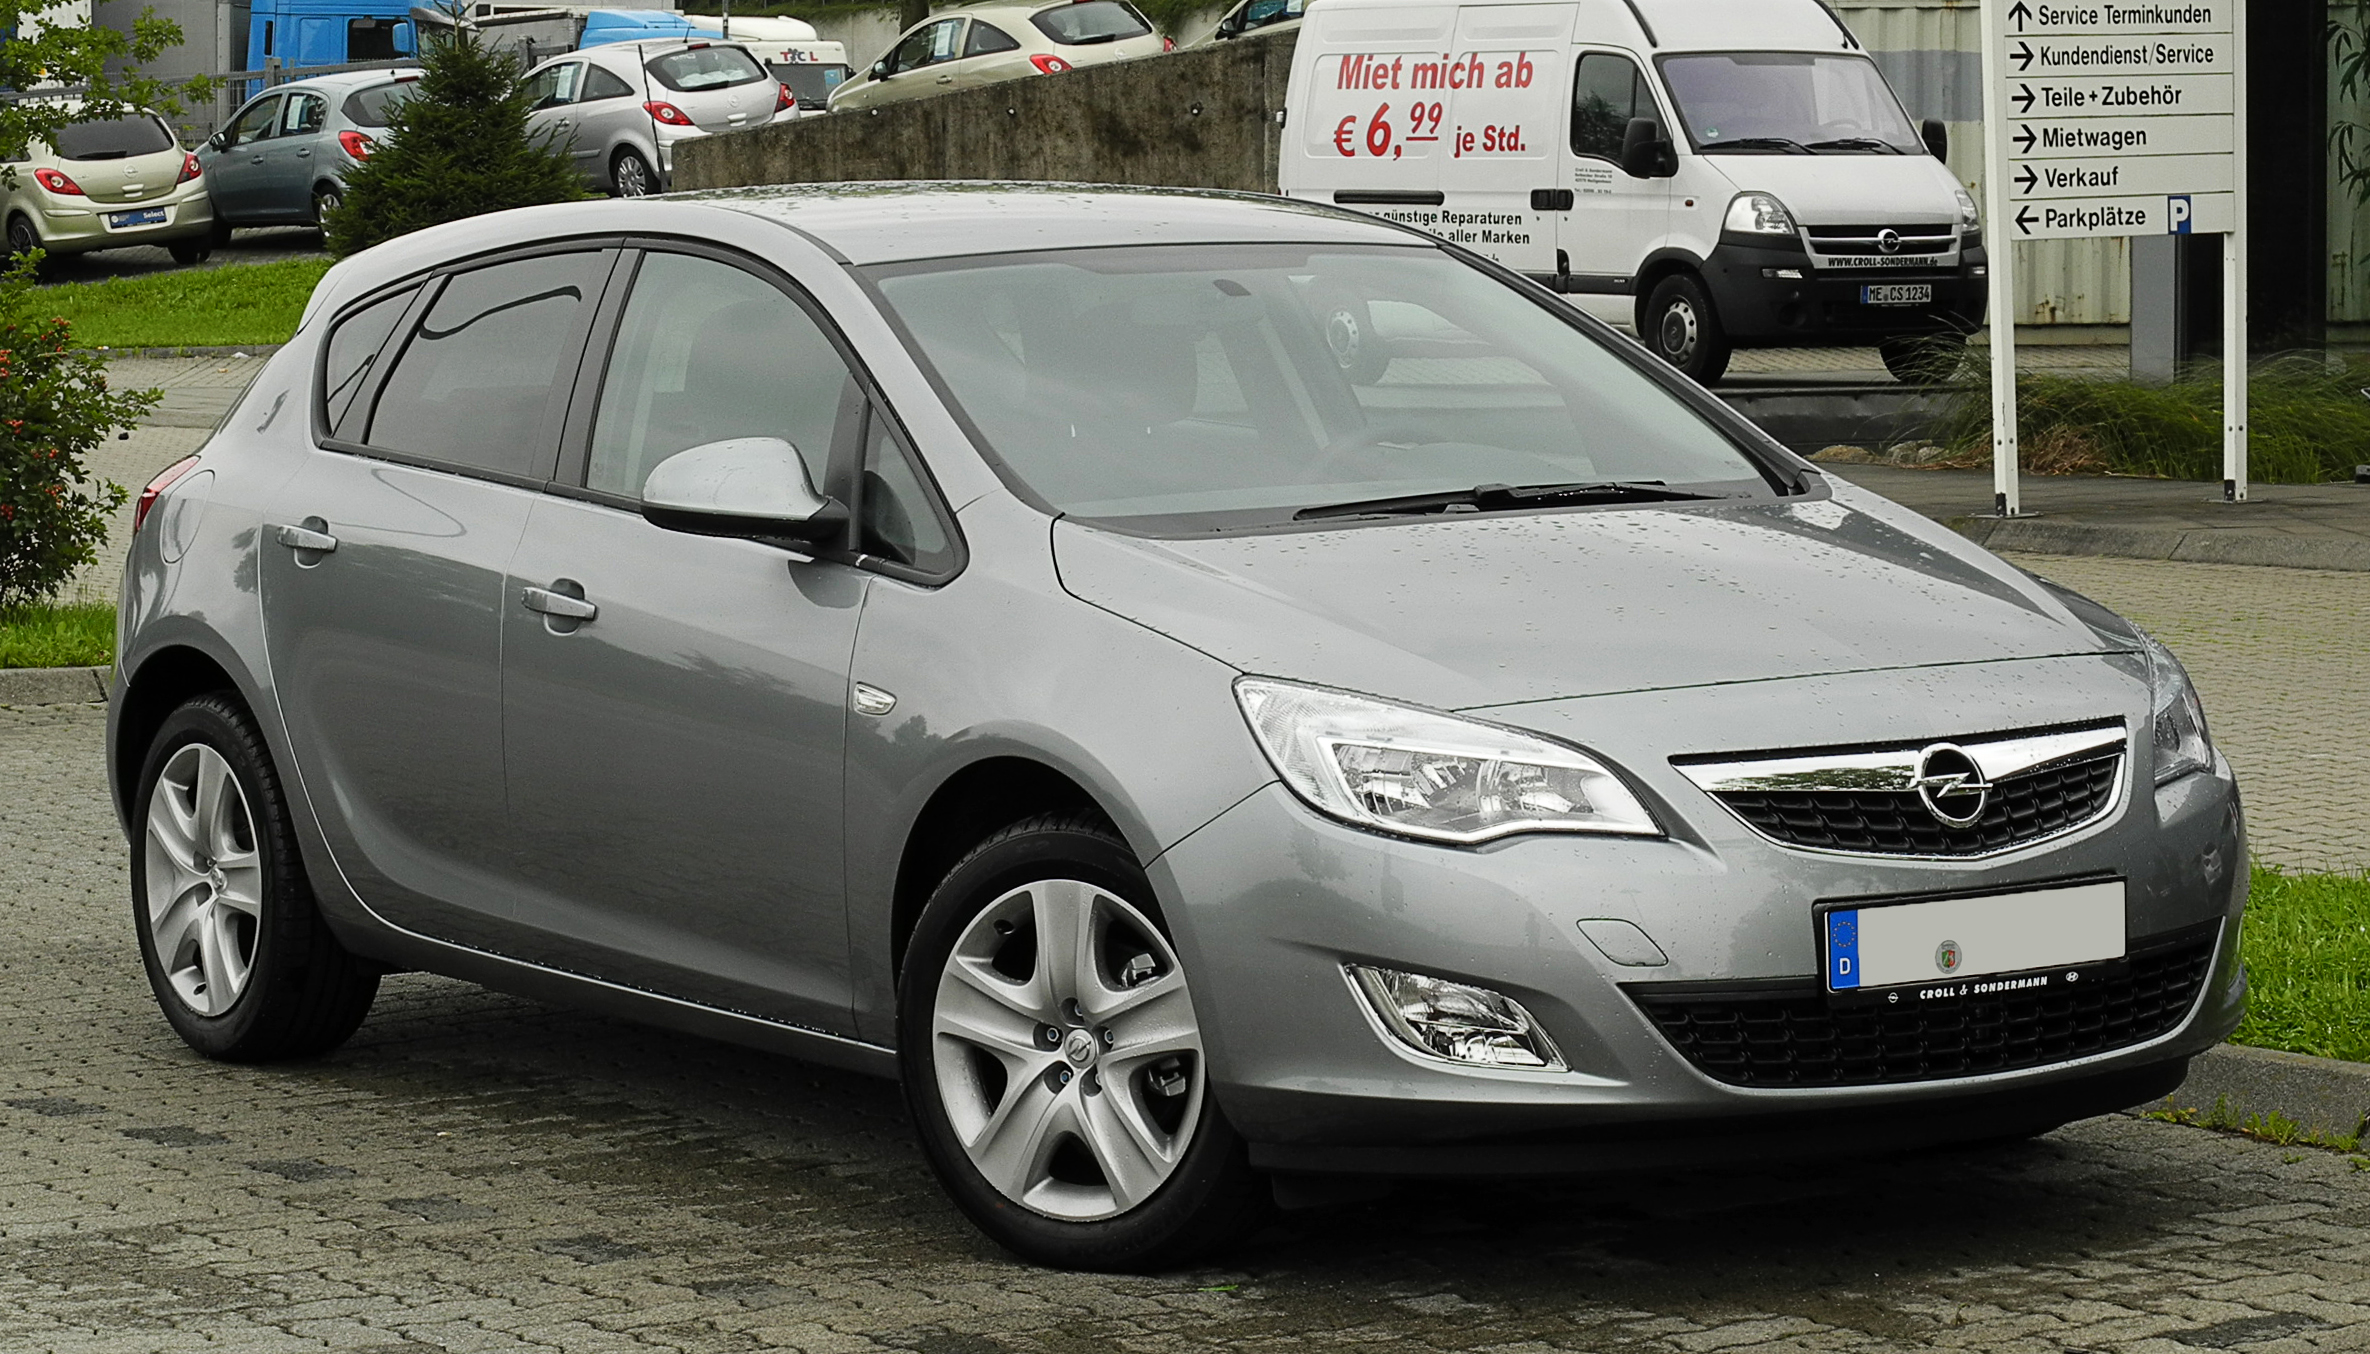 Opel Astra File Opel Astra Design Edition J Frontansicht 1 14